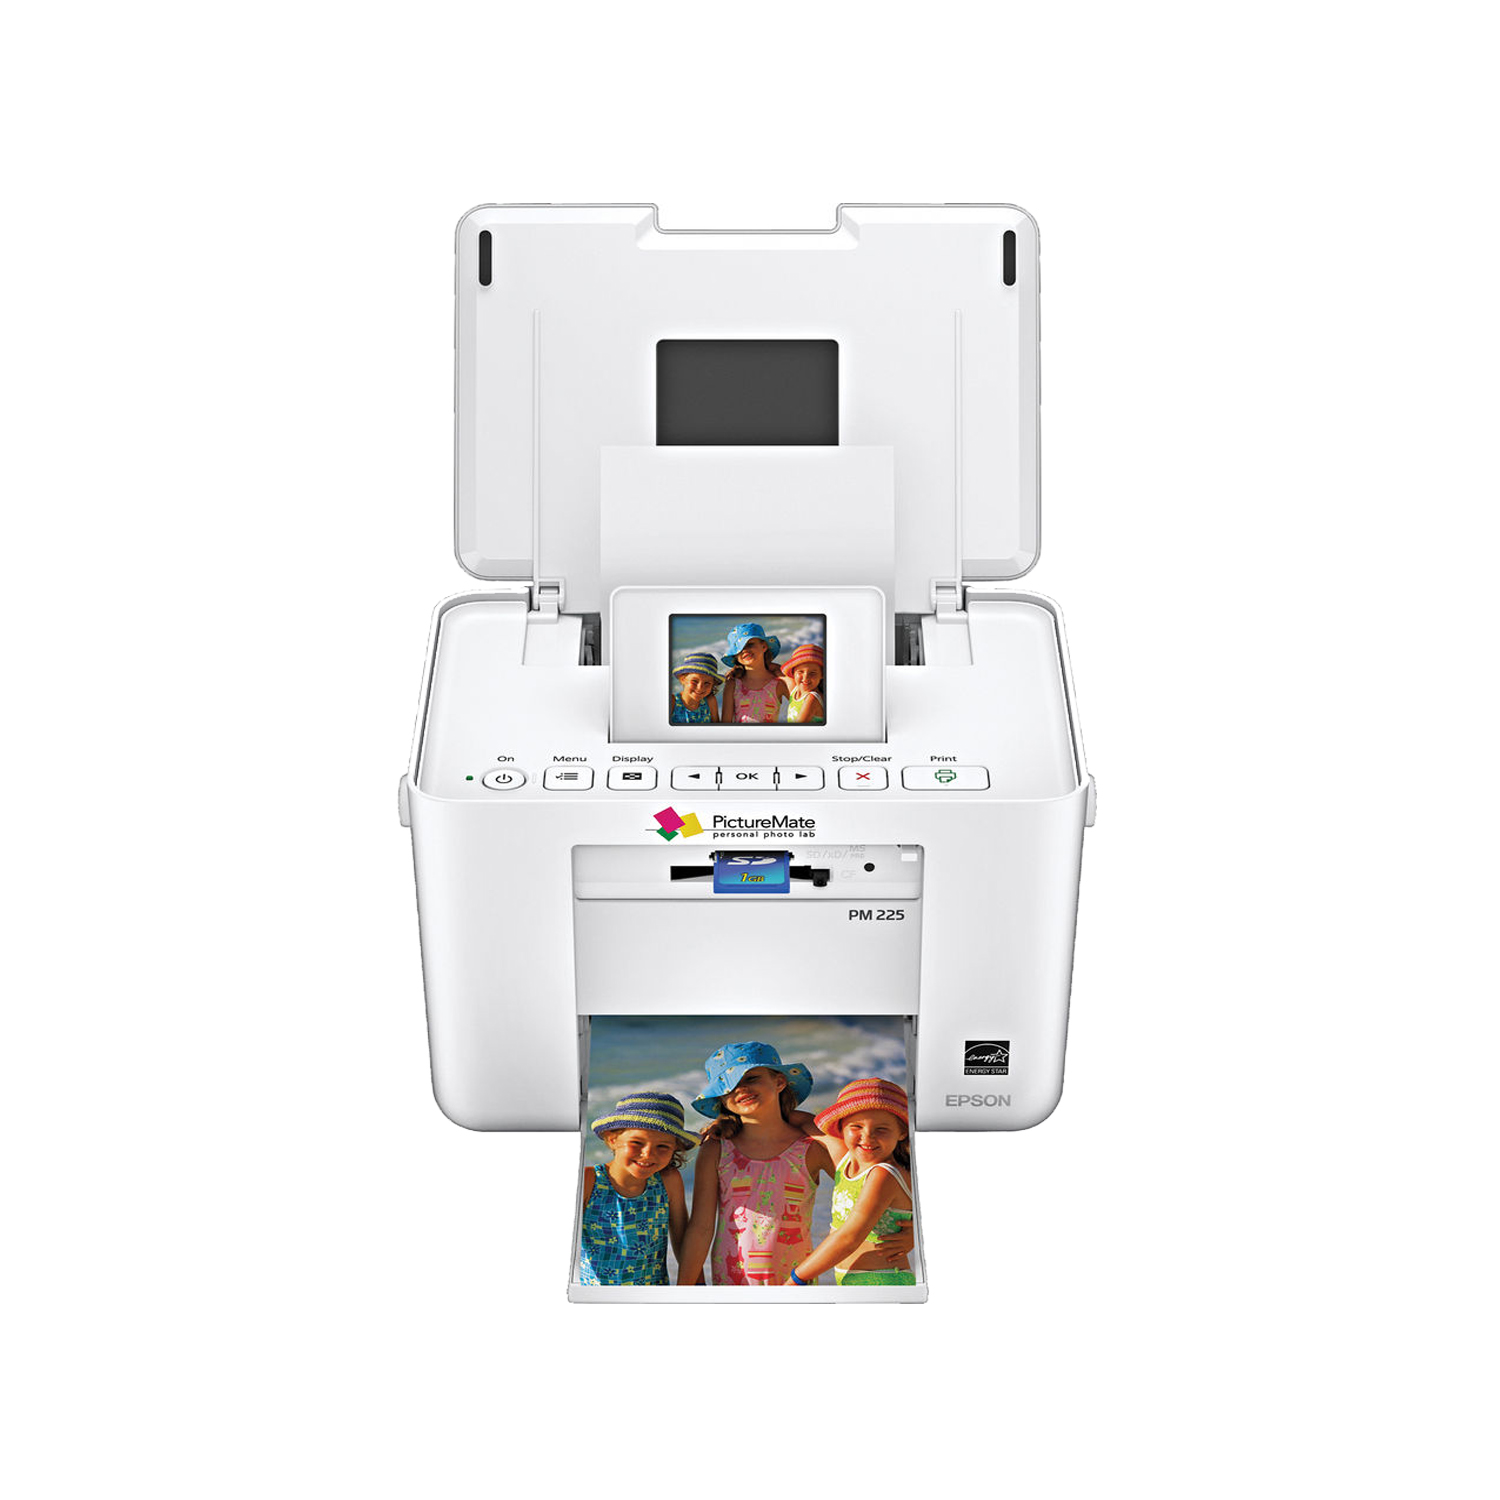 epson pm225 picturemate charm compact personal photo lab